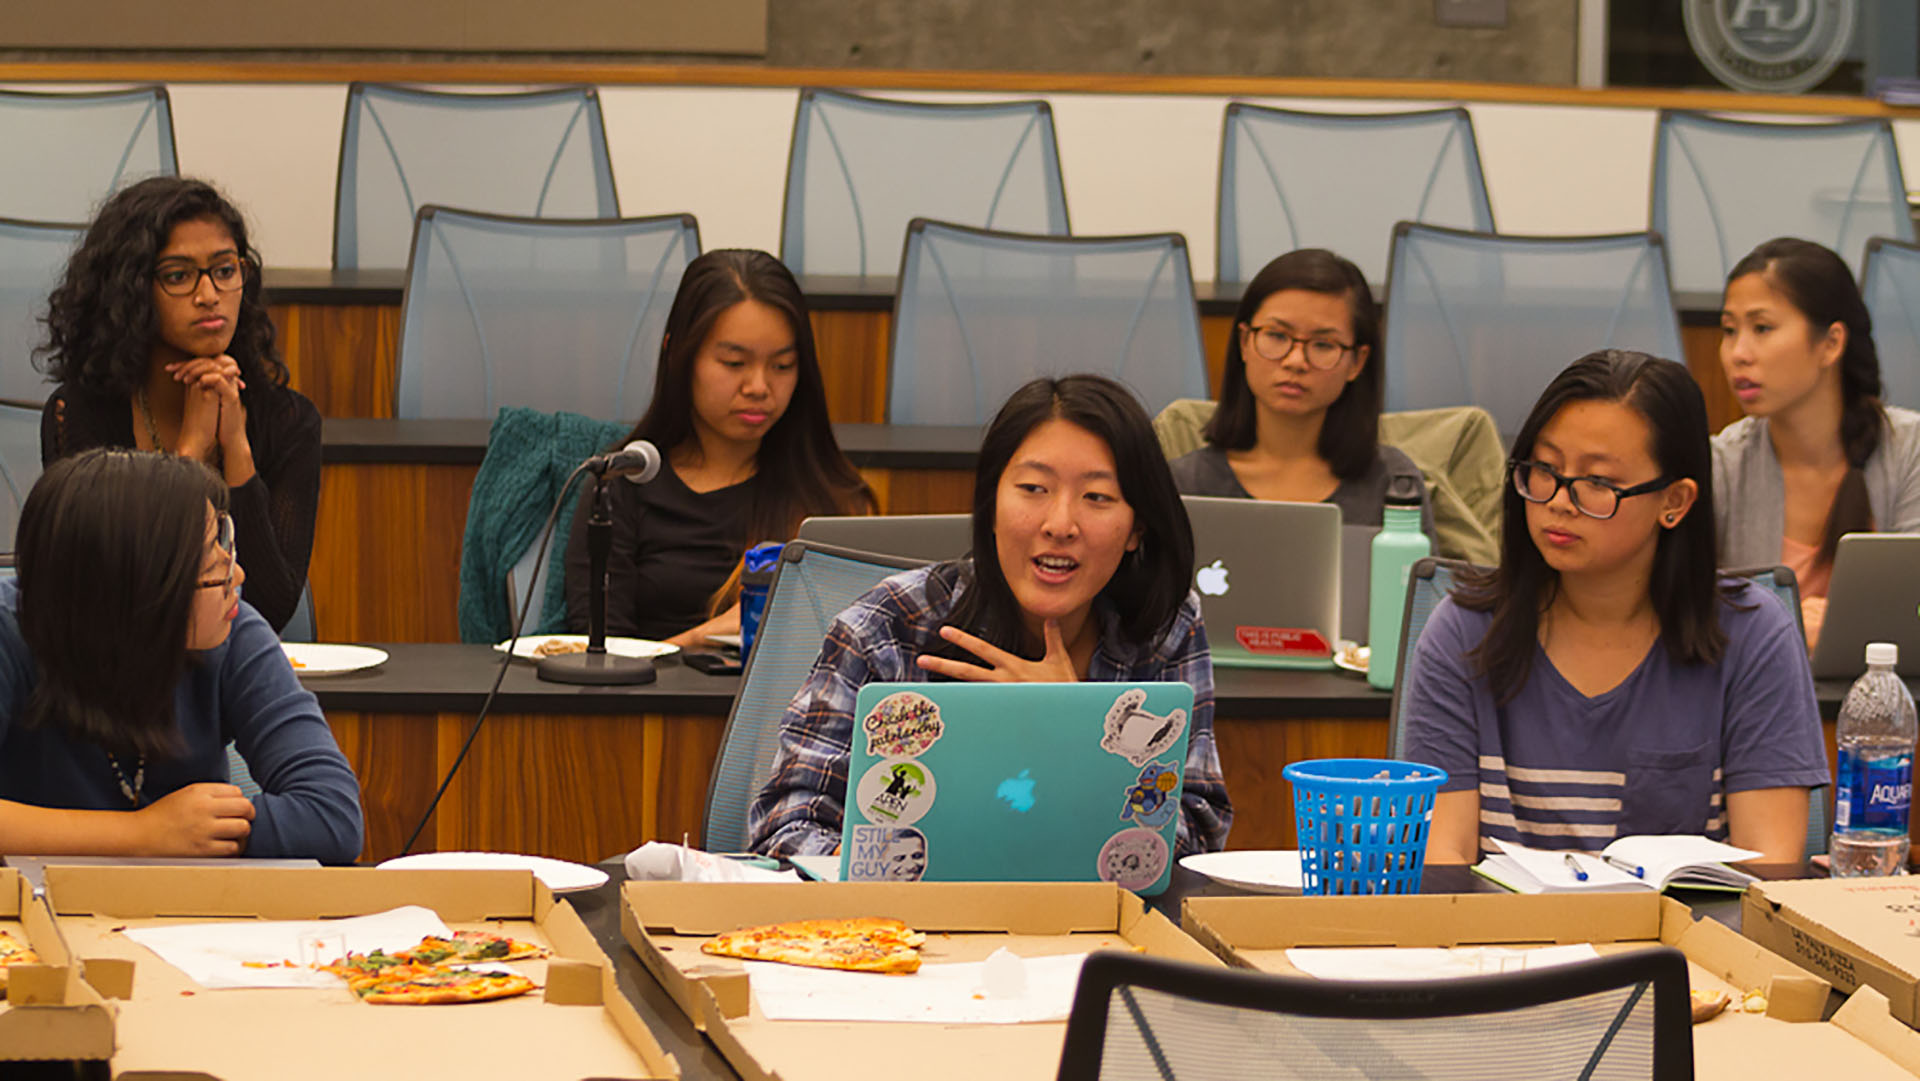 AAPI millennials have opinions, but will they vote?